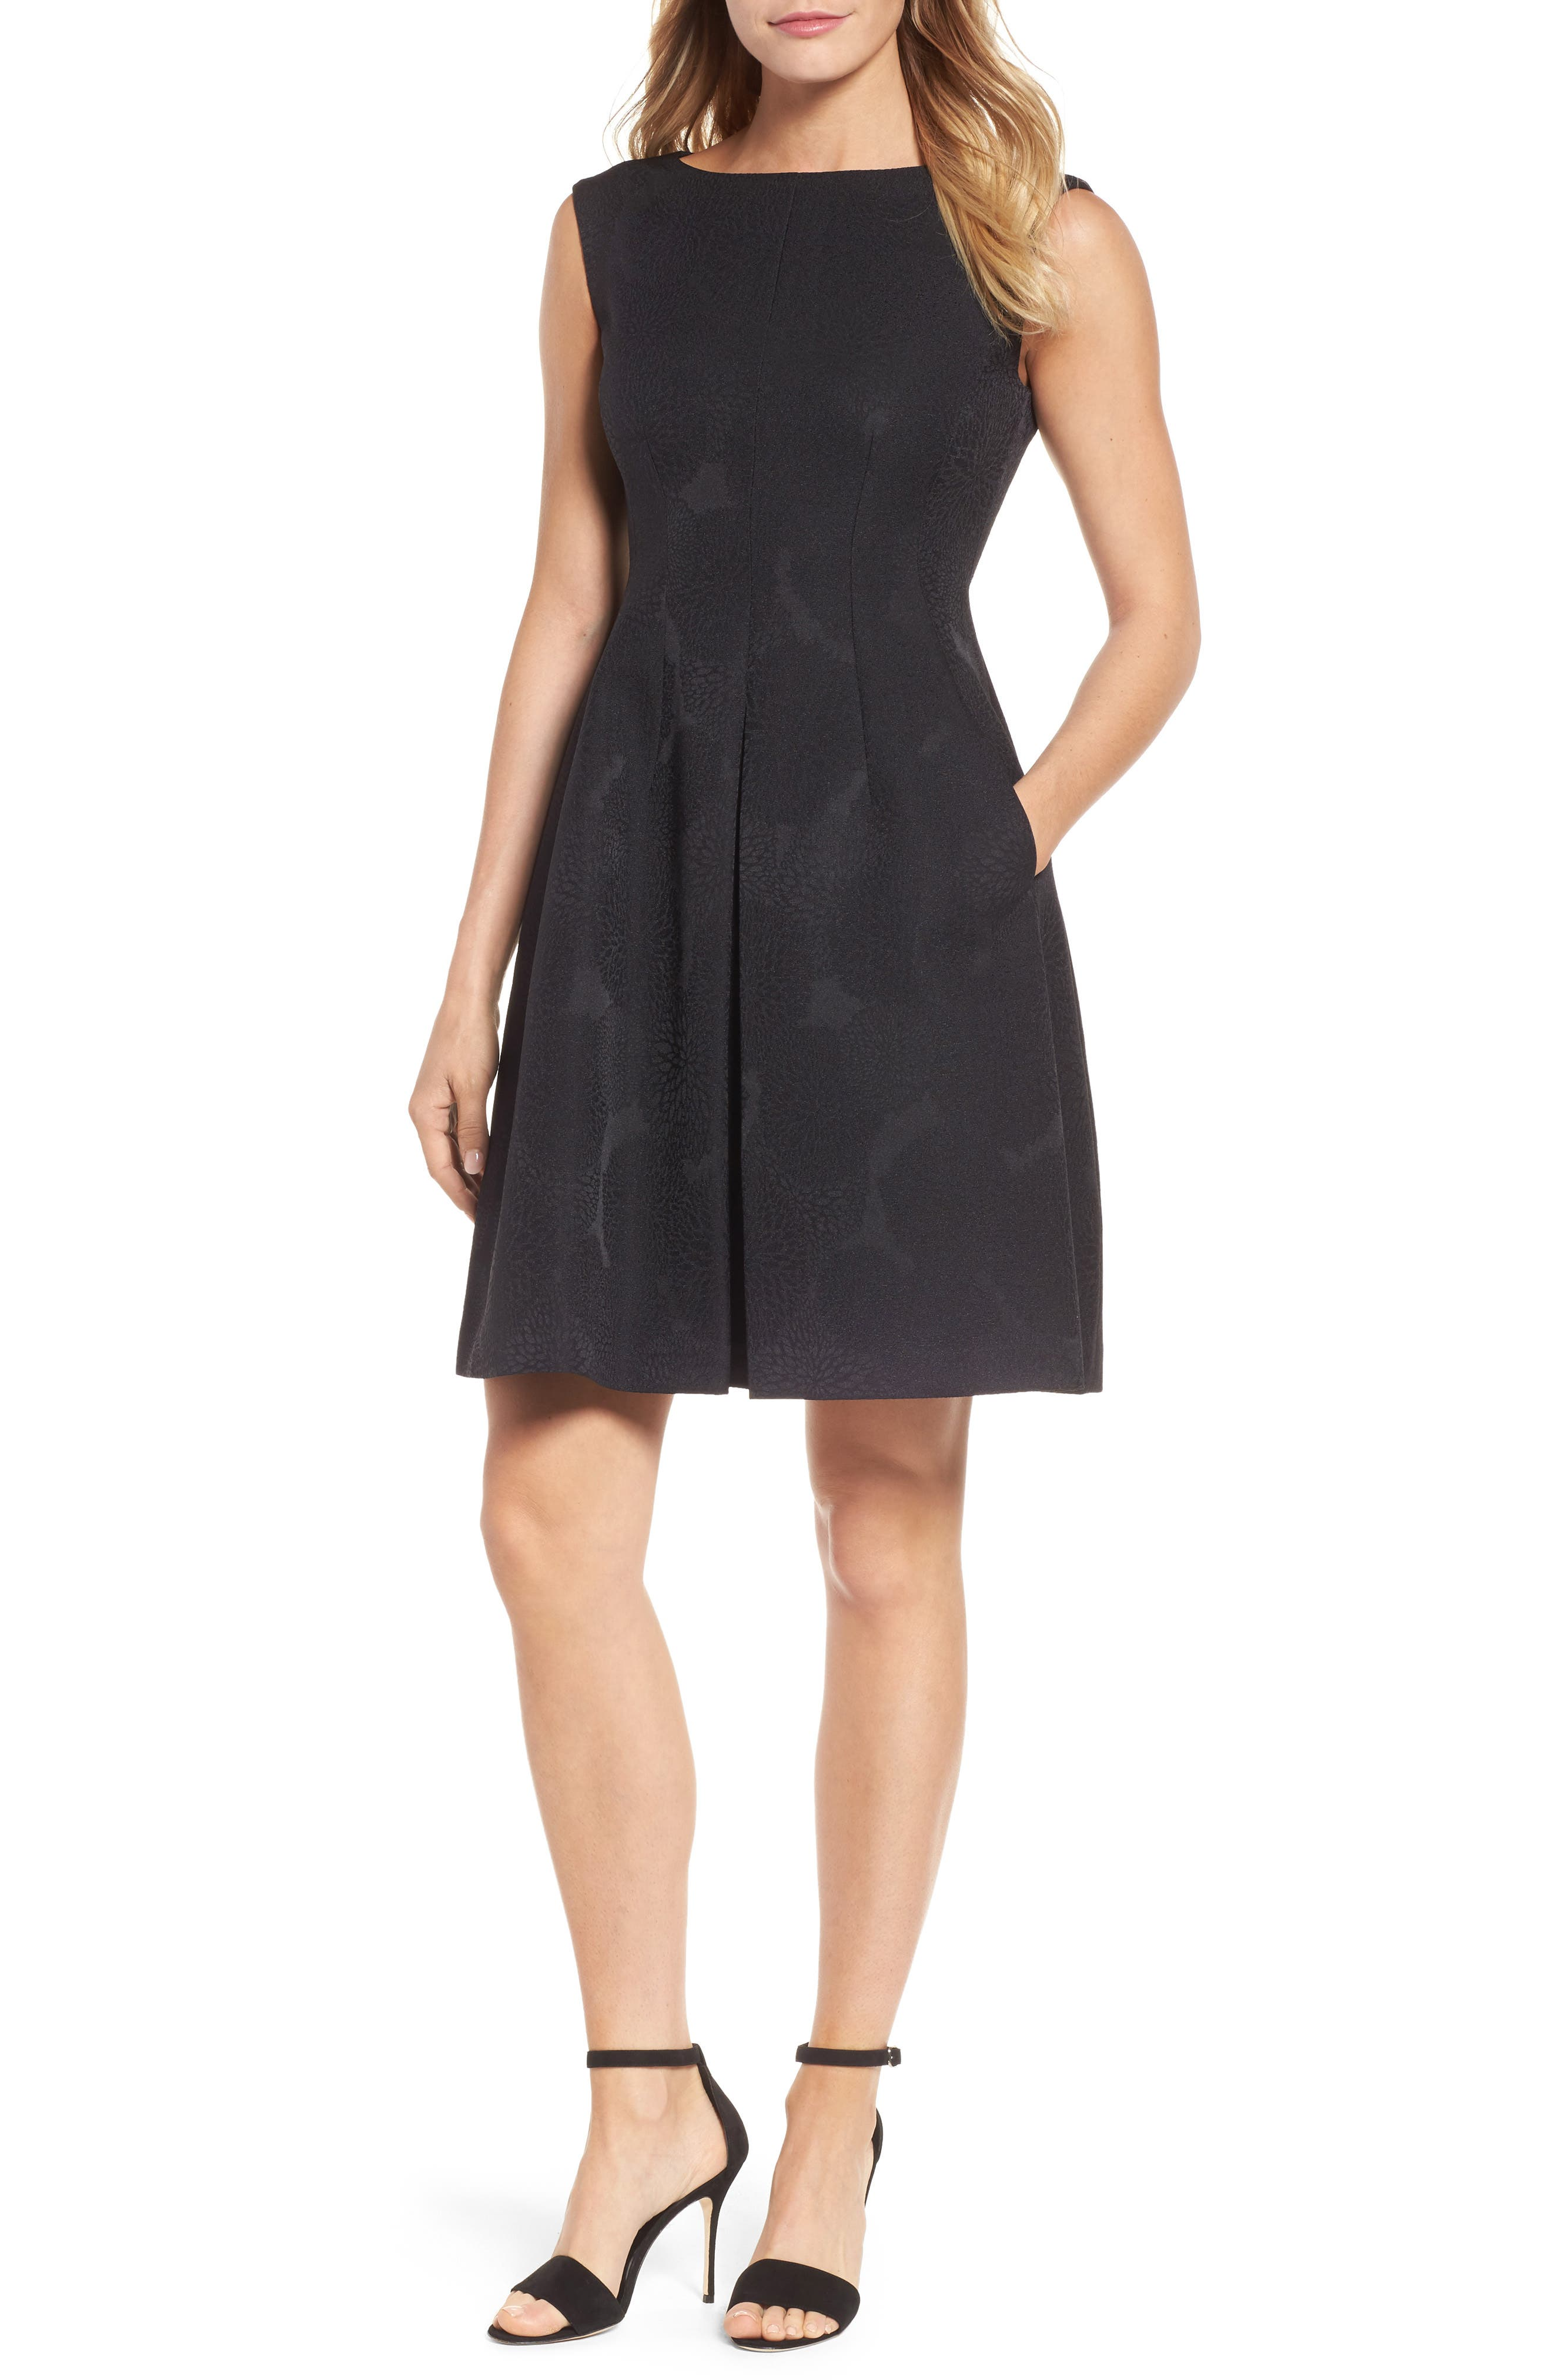 Alternate Image 1 Selected - Anne Klein Jacqaurd Fit & Flare Dress